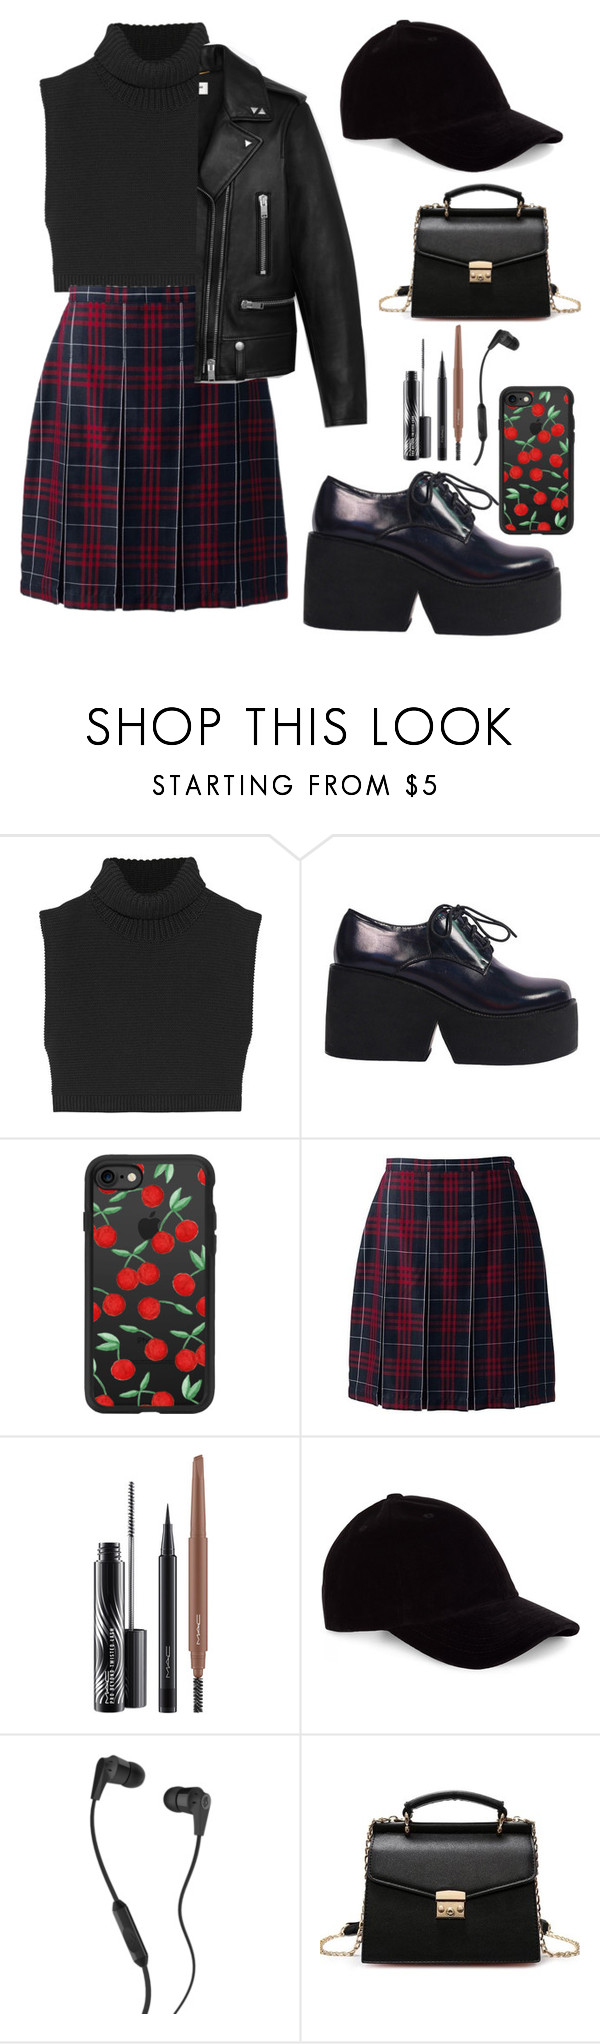 """""""Untitled #102"""" by v-bts8486 ❤ liked on Polyvore featuring Victoria Beckham, Casetify, Lands' End, MAC Cosmetics, Skullcandy and Yves Saint Laurent"""